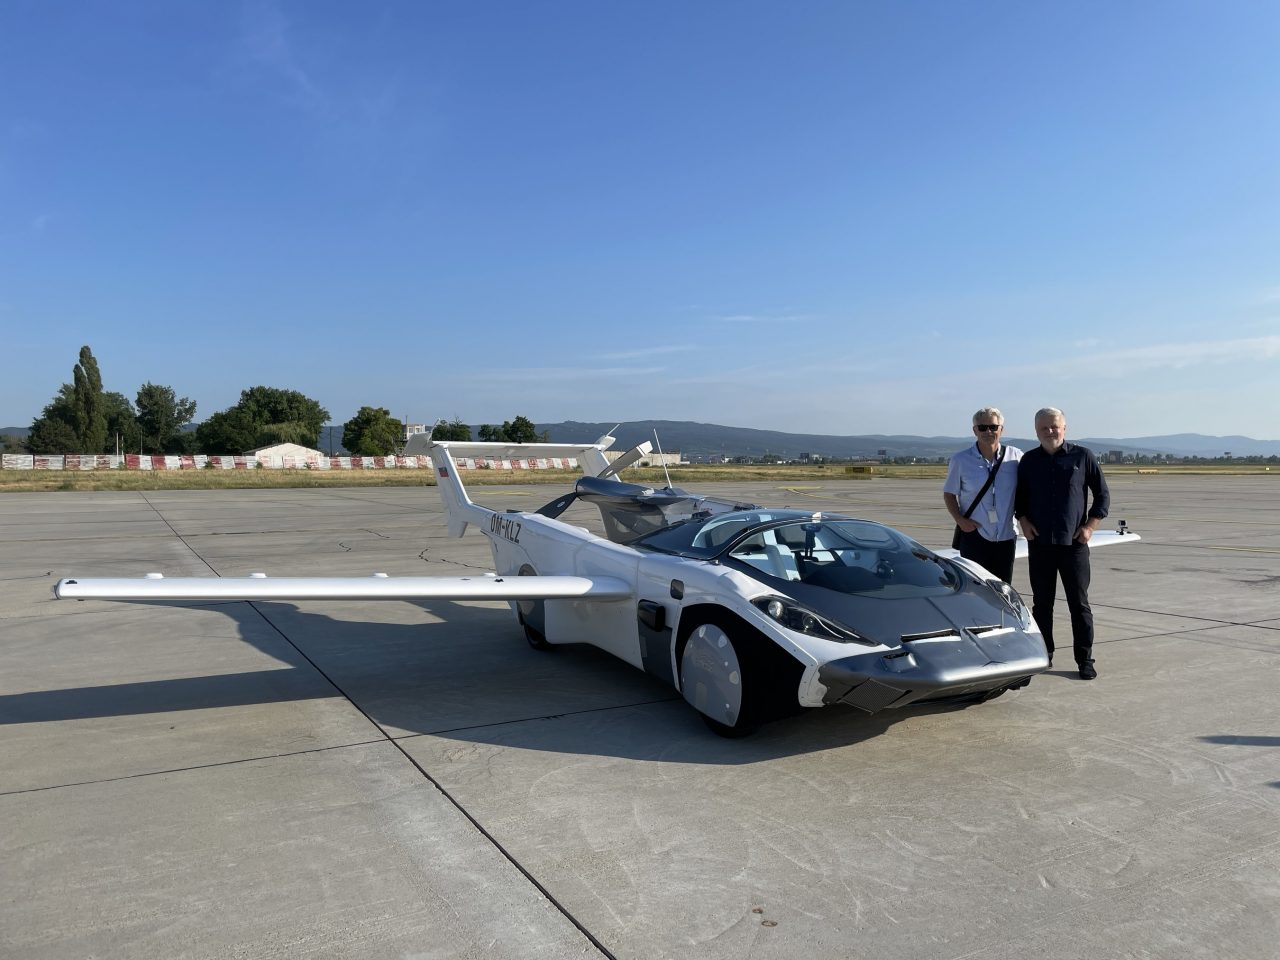 https://coreheli.com/wp-content/uploads/2021/06/klein-visions-flying-car-aircar-makes-first-ever-inter-city-flight-164300_1-1280x960.jpg